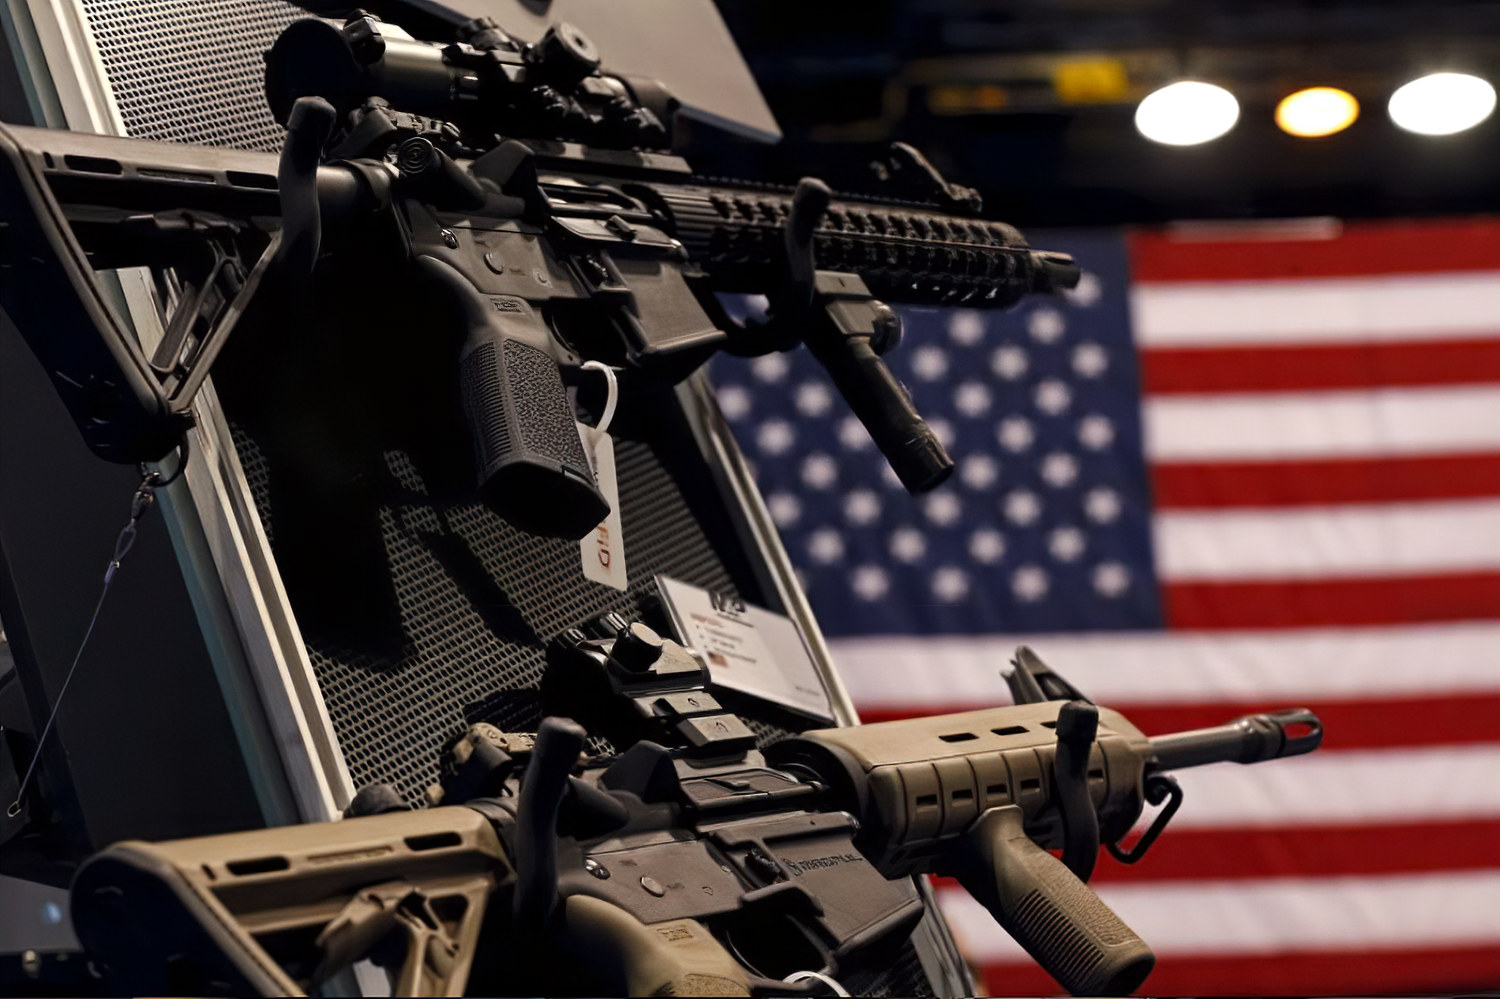 NYT: US firearms sales surge